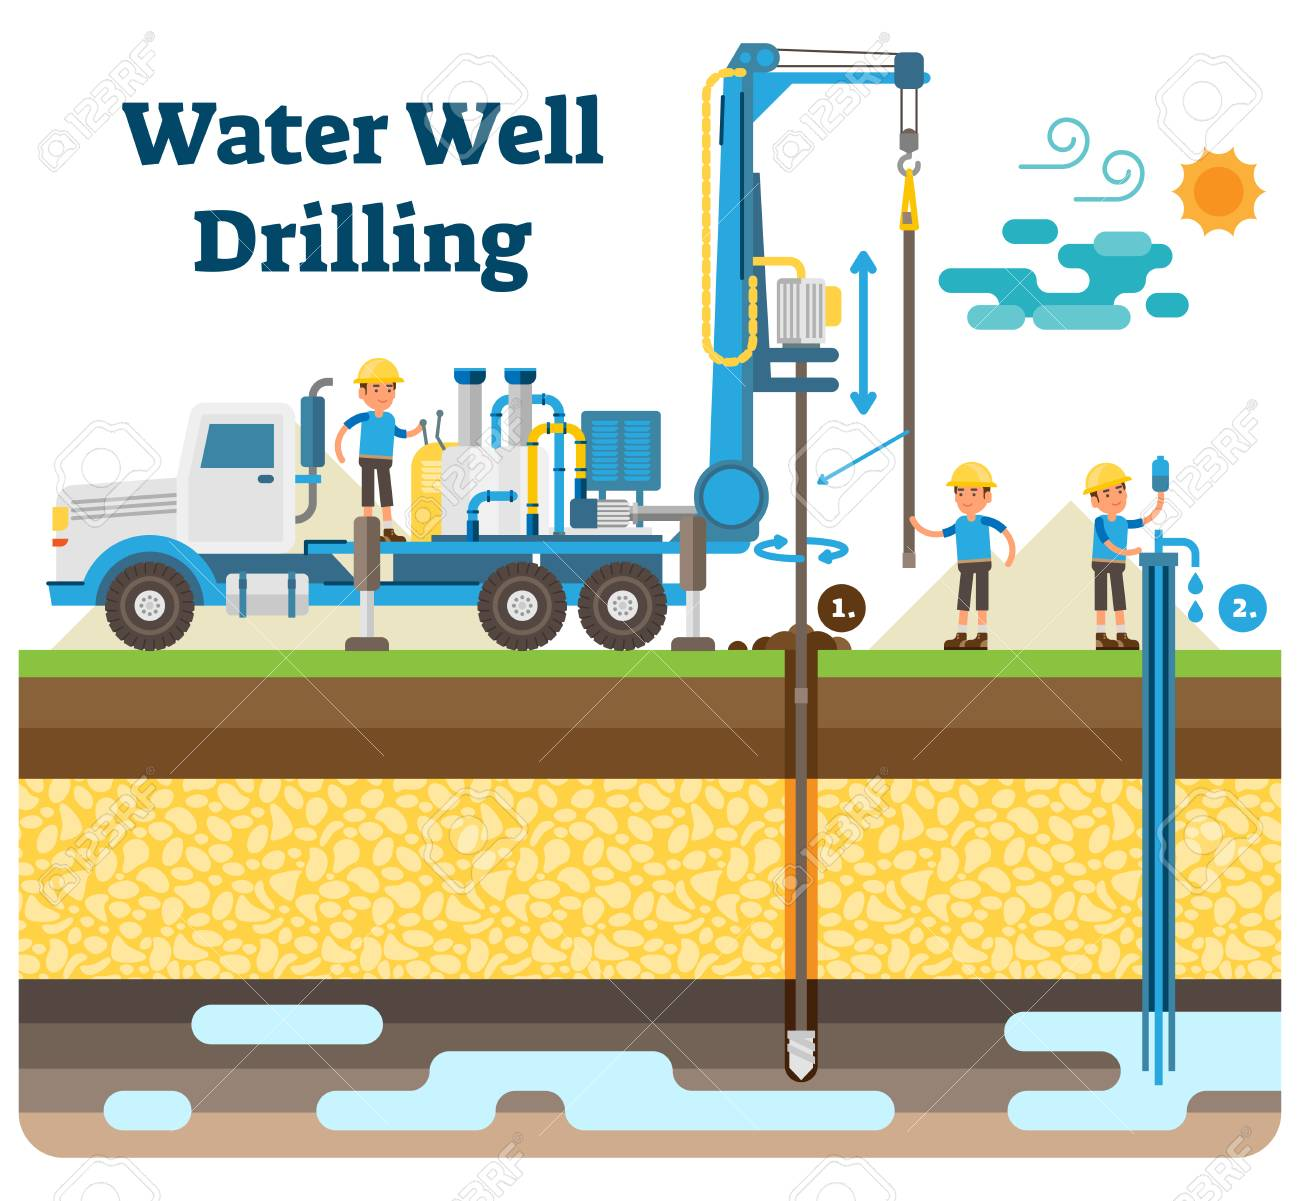 water well diagram drinking water well wire data schema \u2022 residential well systems water well drilling vector illustration diagram with derrick rh 123rf com residential water well pump systems